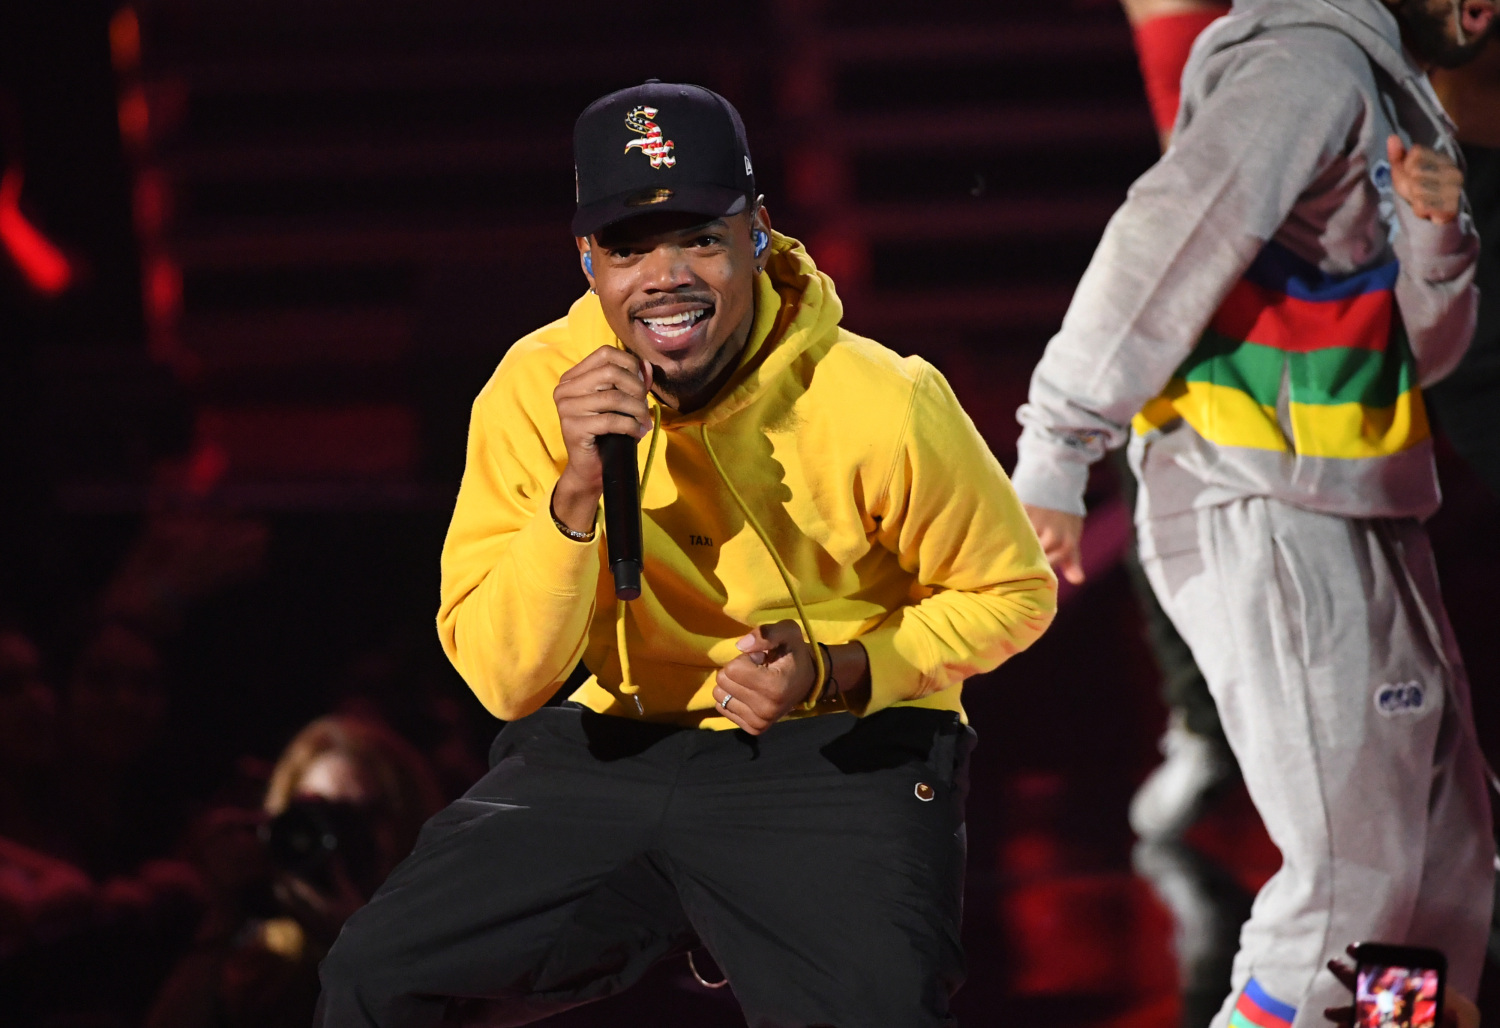 Chance The Rapper To Surprise A Montgomery County Teacher With Award On Instagram Live Friday, Donating $300K To Teachers, Schools – CBS Baltimore